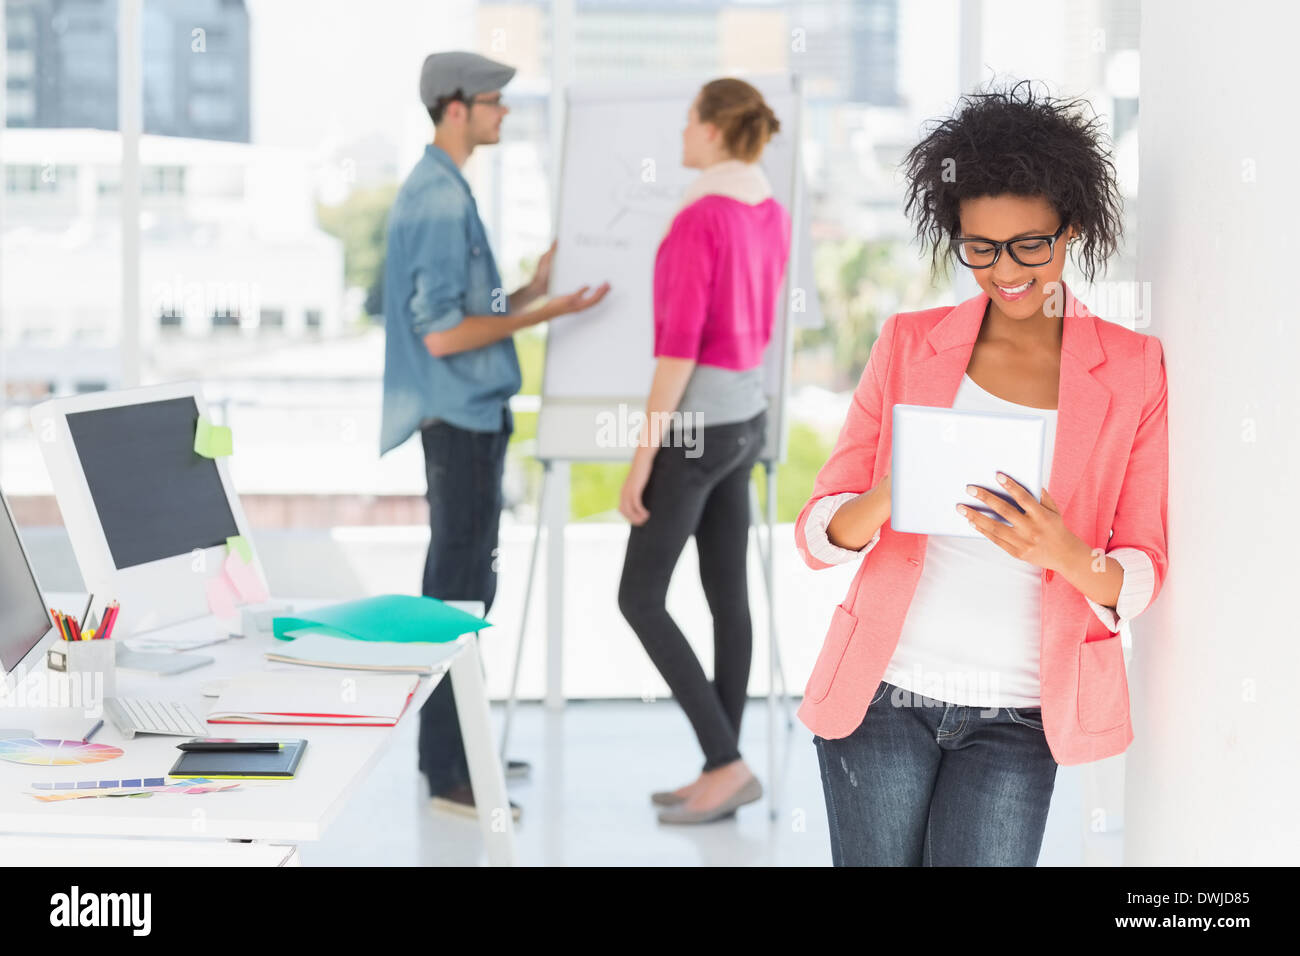 Artist using digital tablet with colleagues in at office - Stock Image